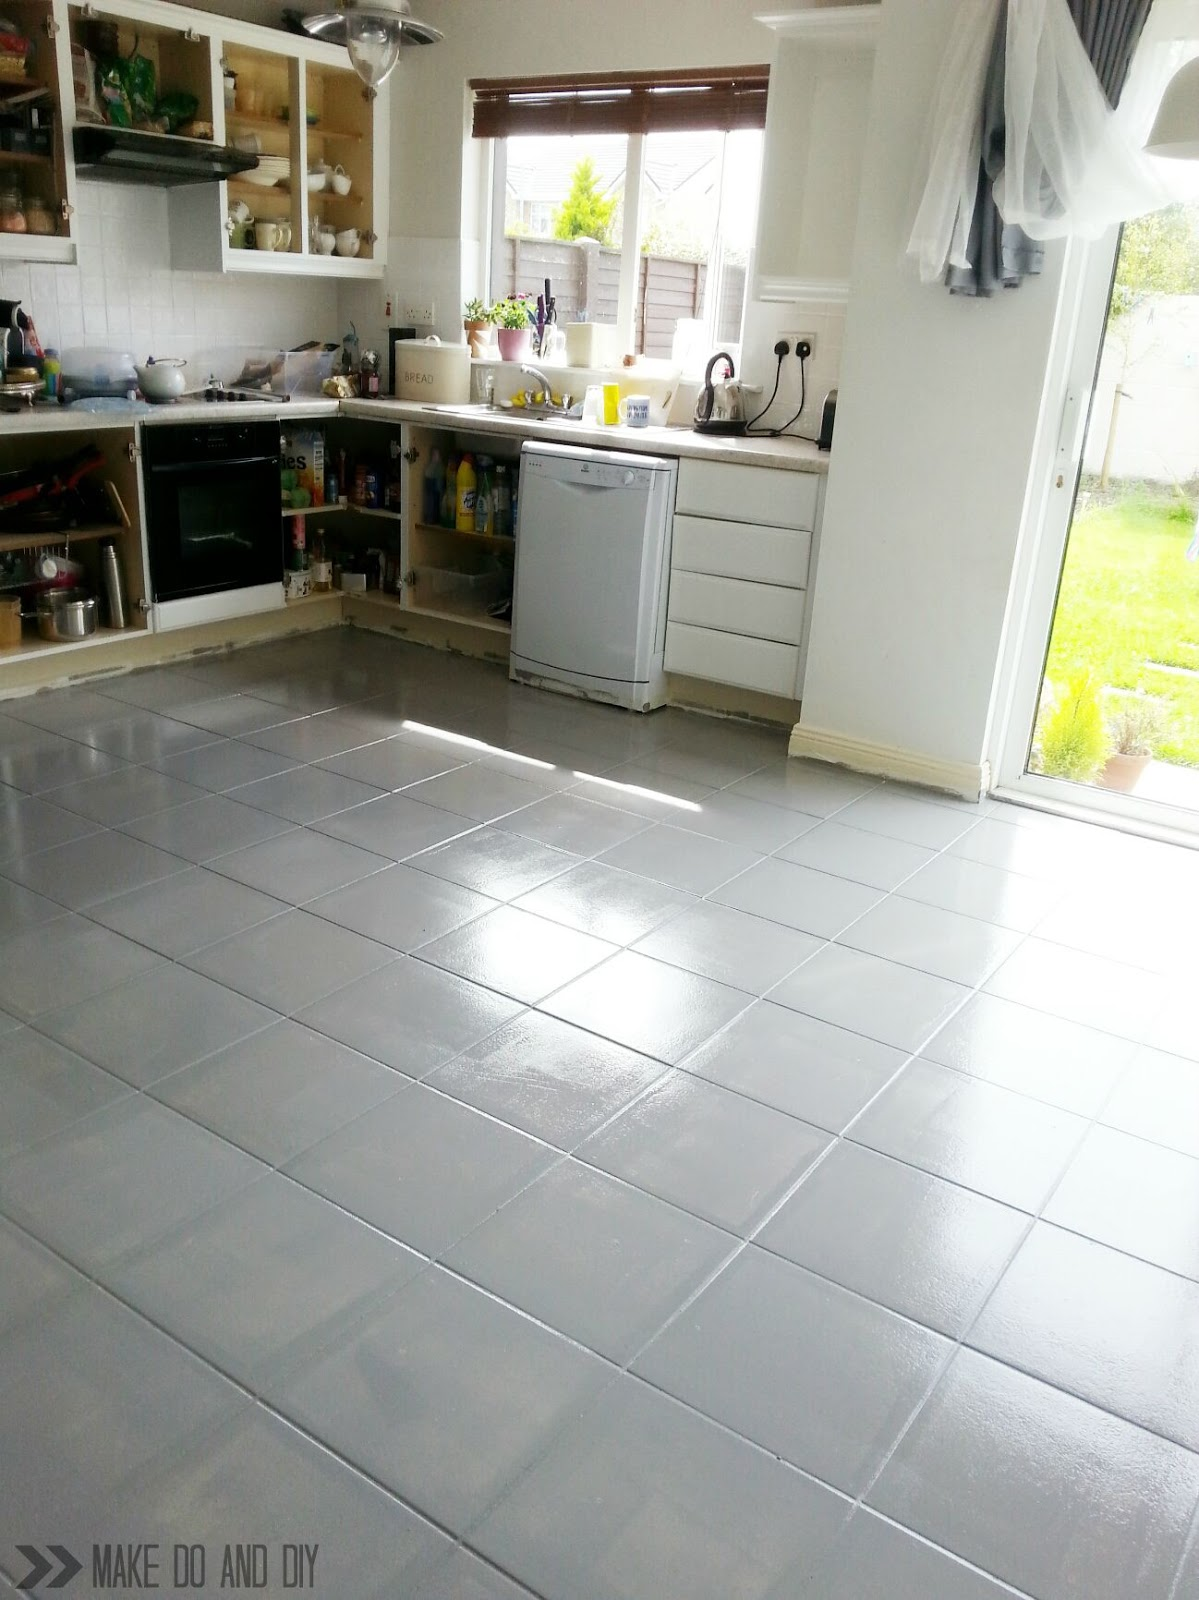 Painted tile floor no really make do and diy how to paint a tile floor and what you should think about before you do dailygadgetfo Gallery